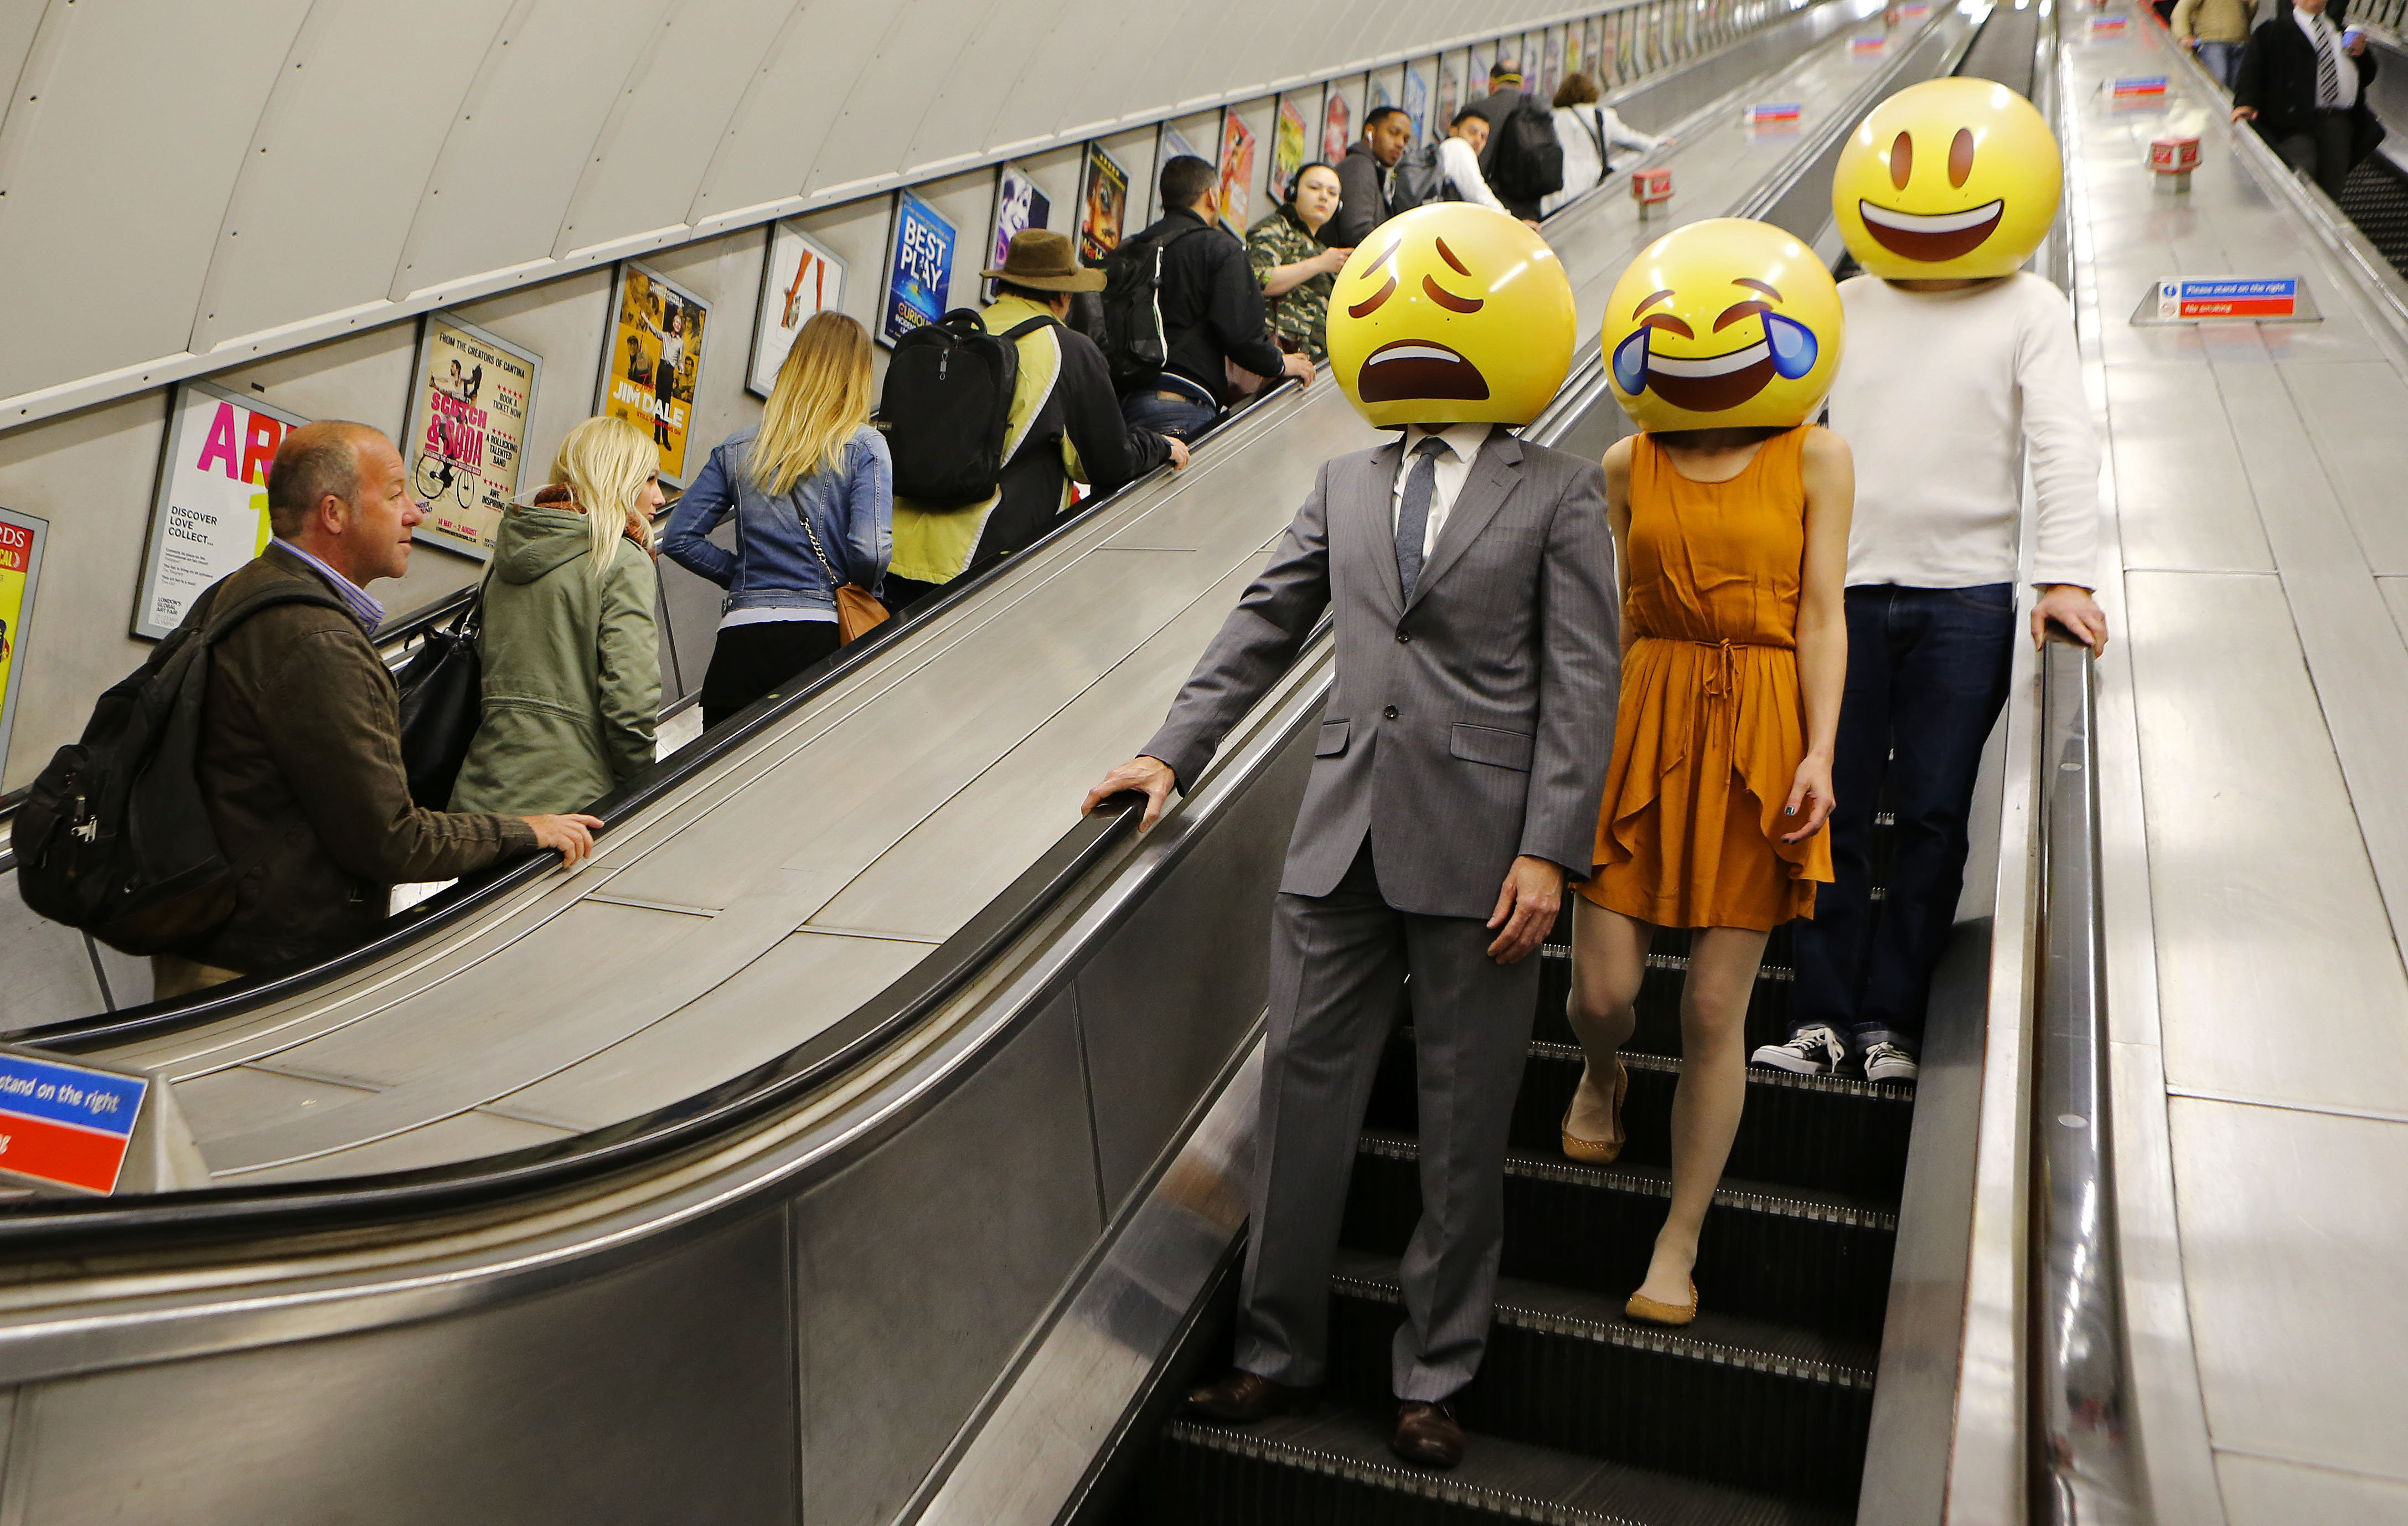 Emoji characters around London